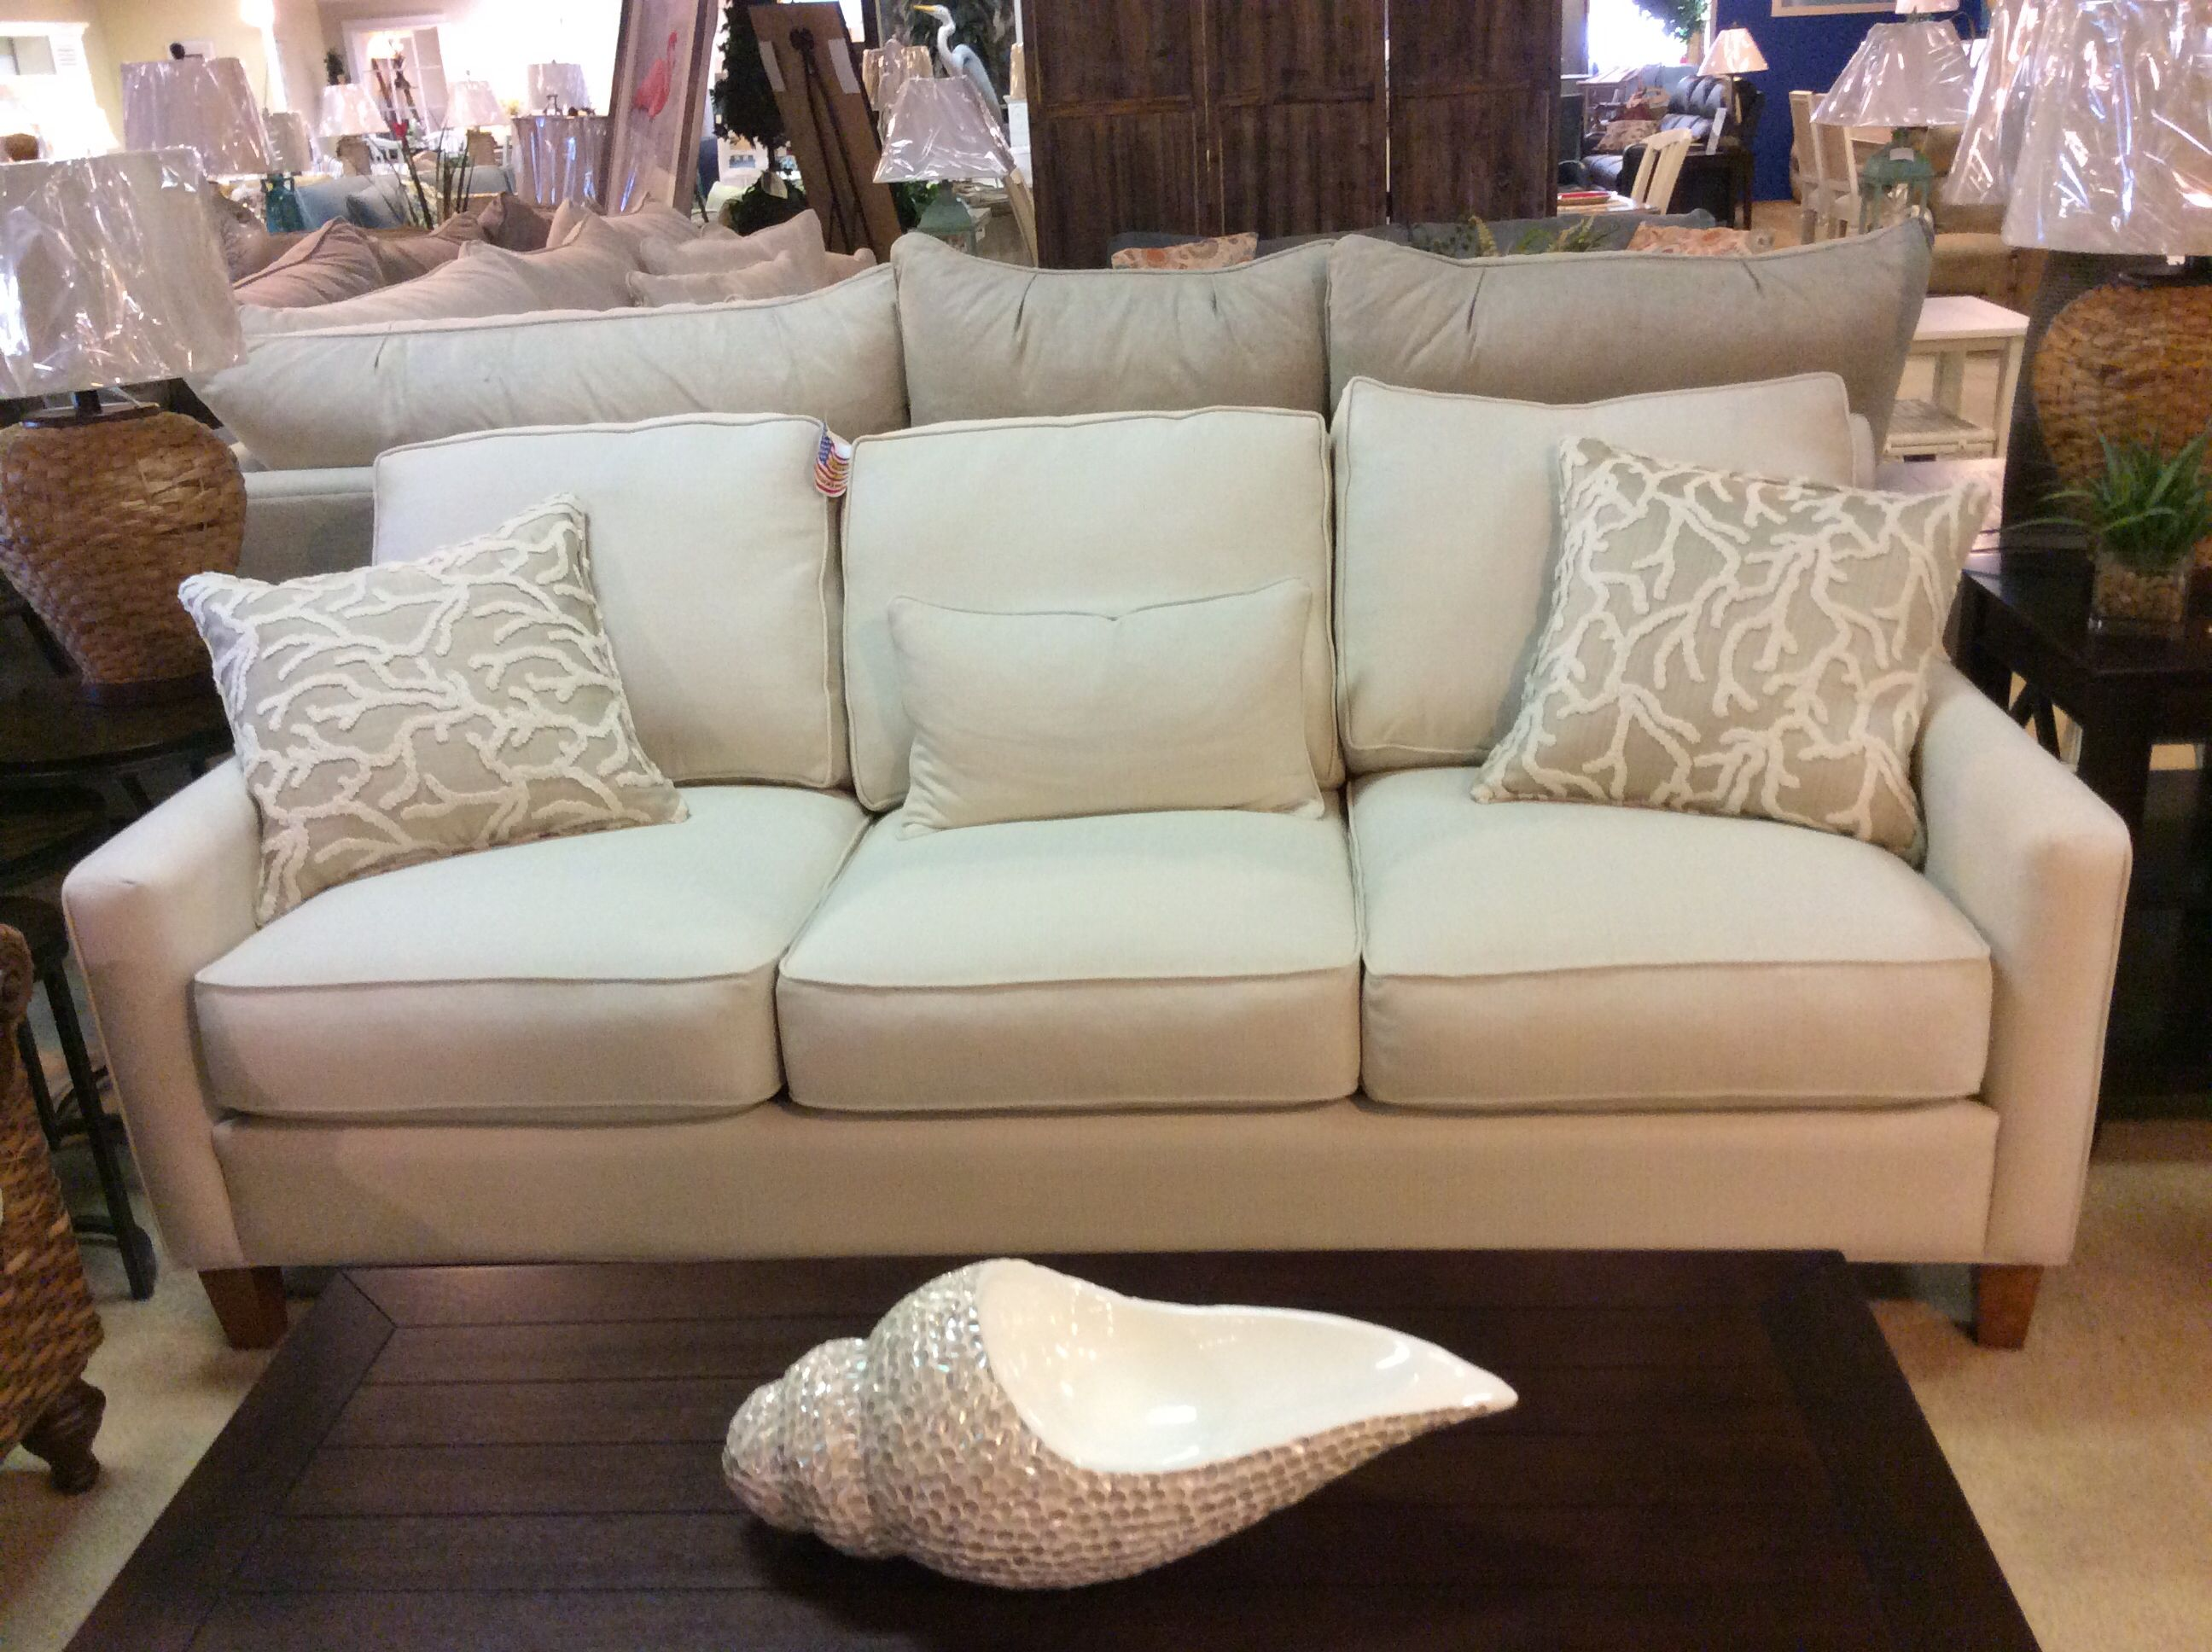 item boston holders by ashley rotmans collections and couches reclining couch design with table addie cup ma ri providence lsg sofa worcester signature sofas drop down